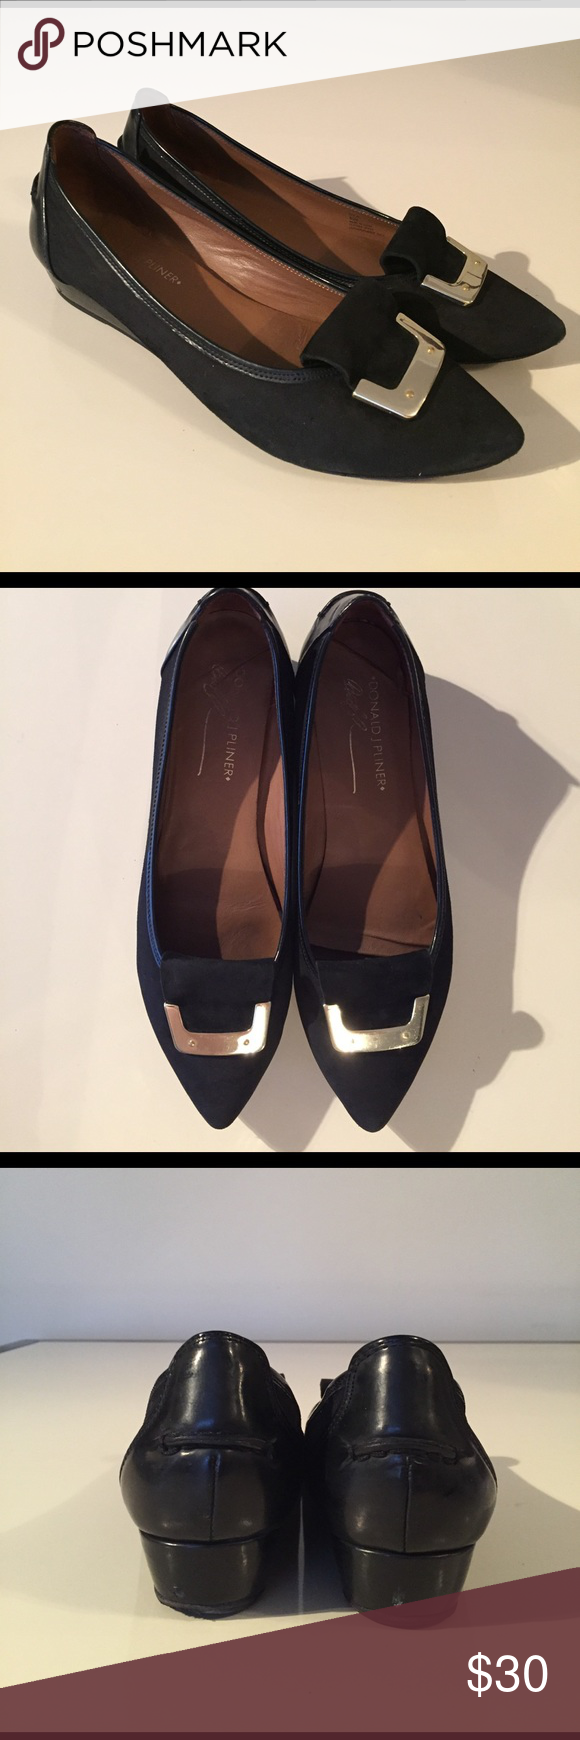 Donald J Pilner black suede point toe NILA flat Donald J Pilner black suede point toe NILA flat 8.5 upper in great condition, some signs of wear to bottoms Donald J. Pliner Shoes Flats & Loafers